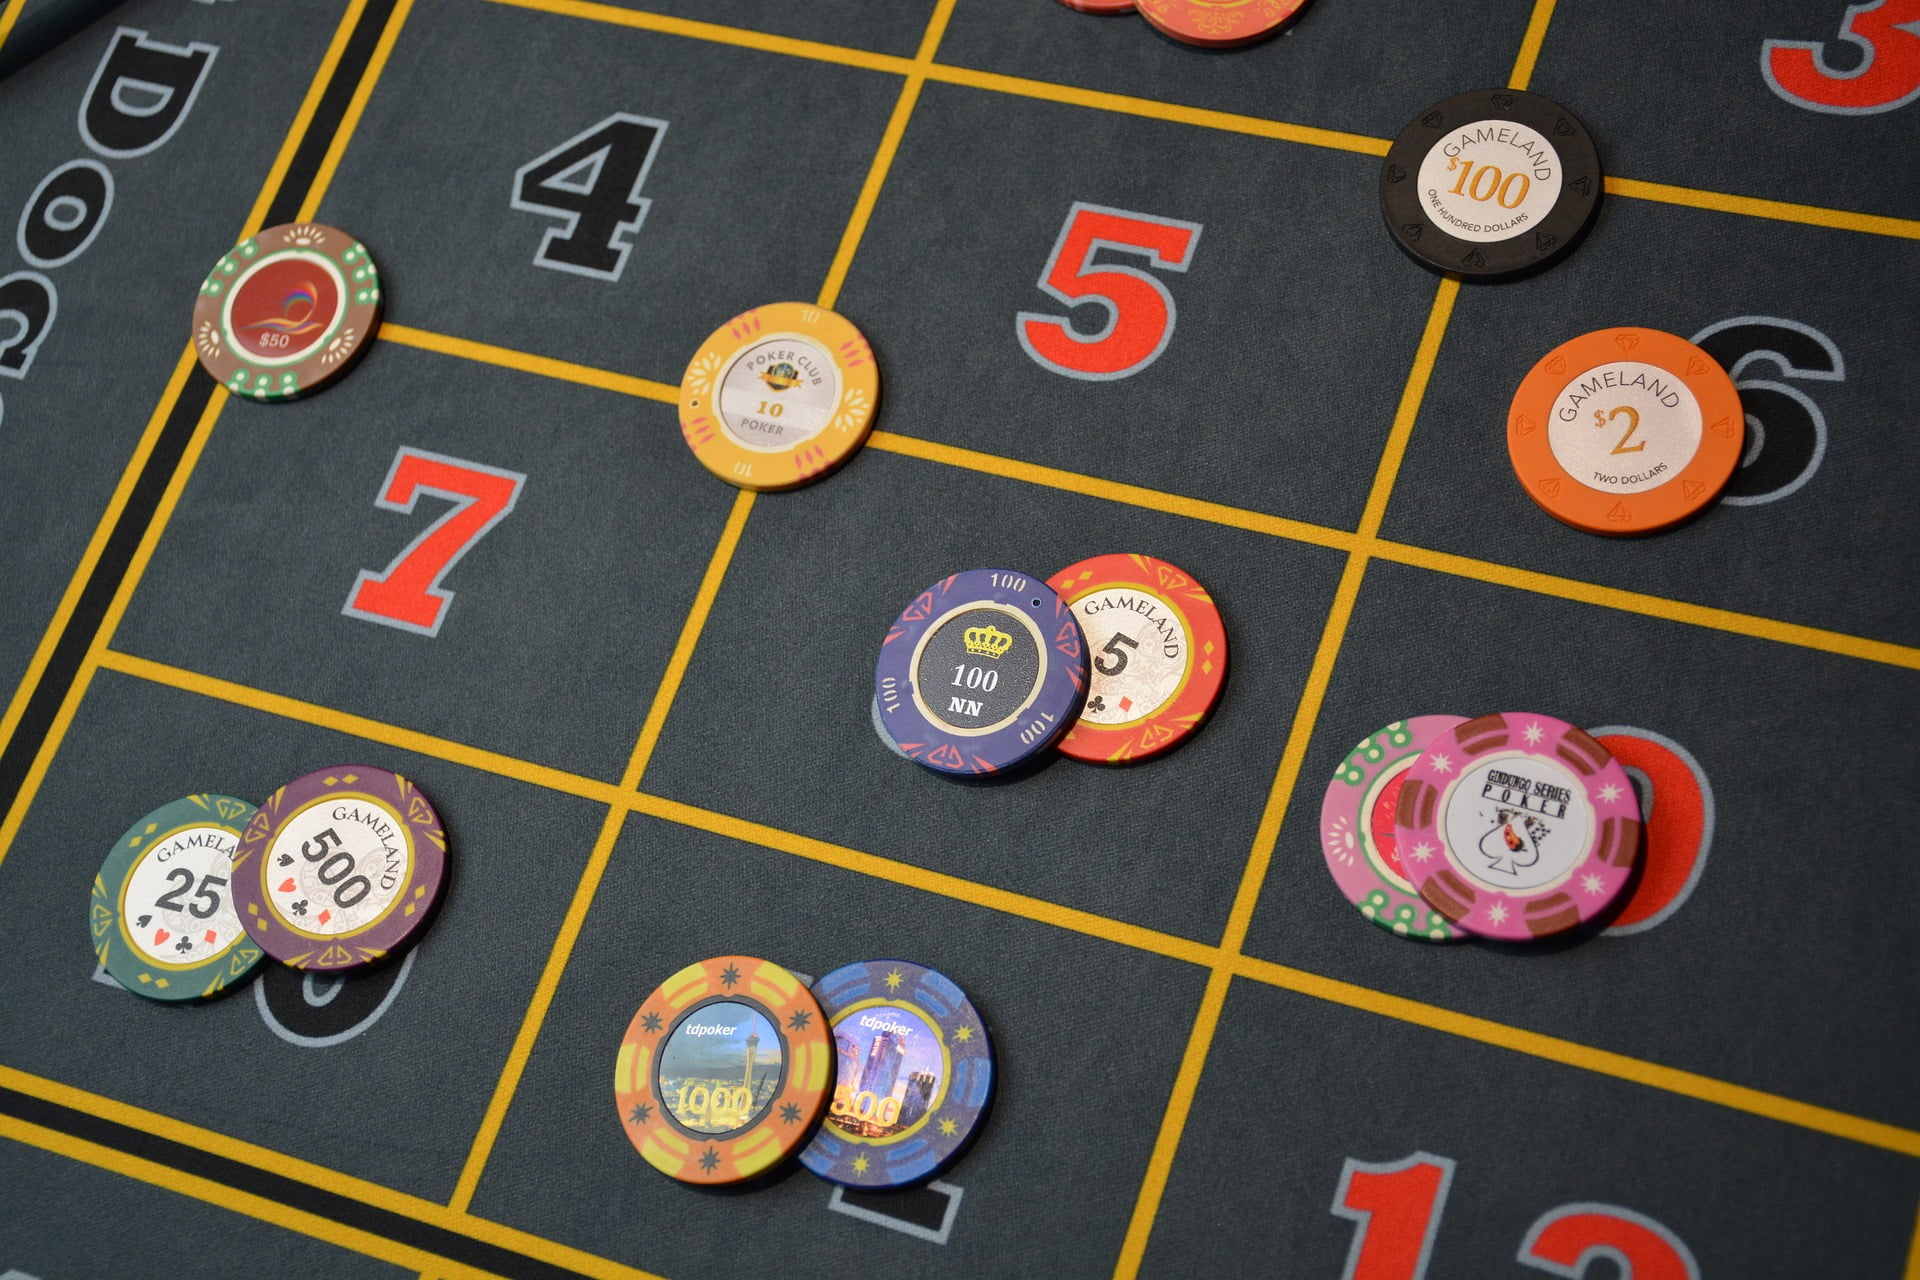 Paypal Online Casino 2021